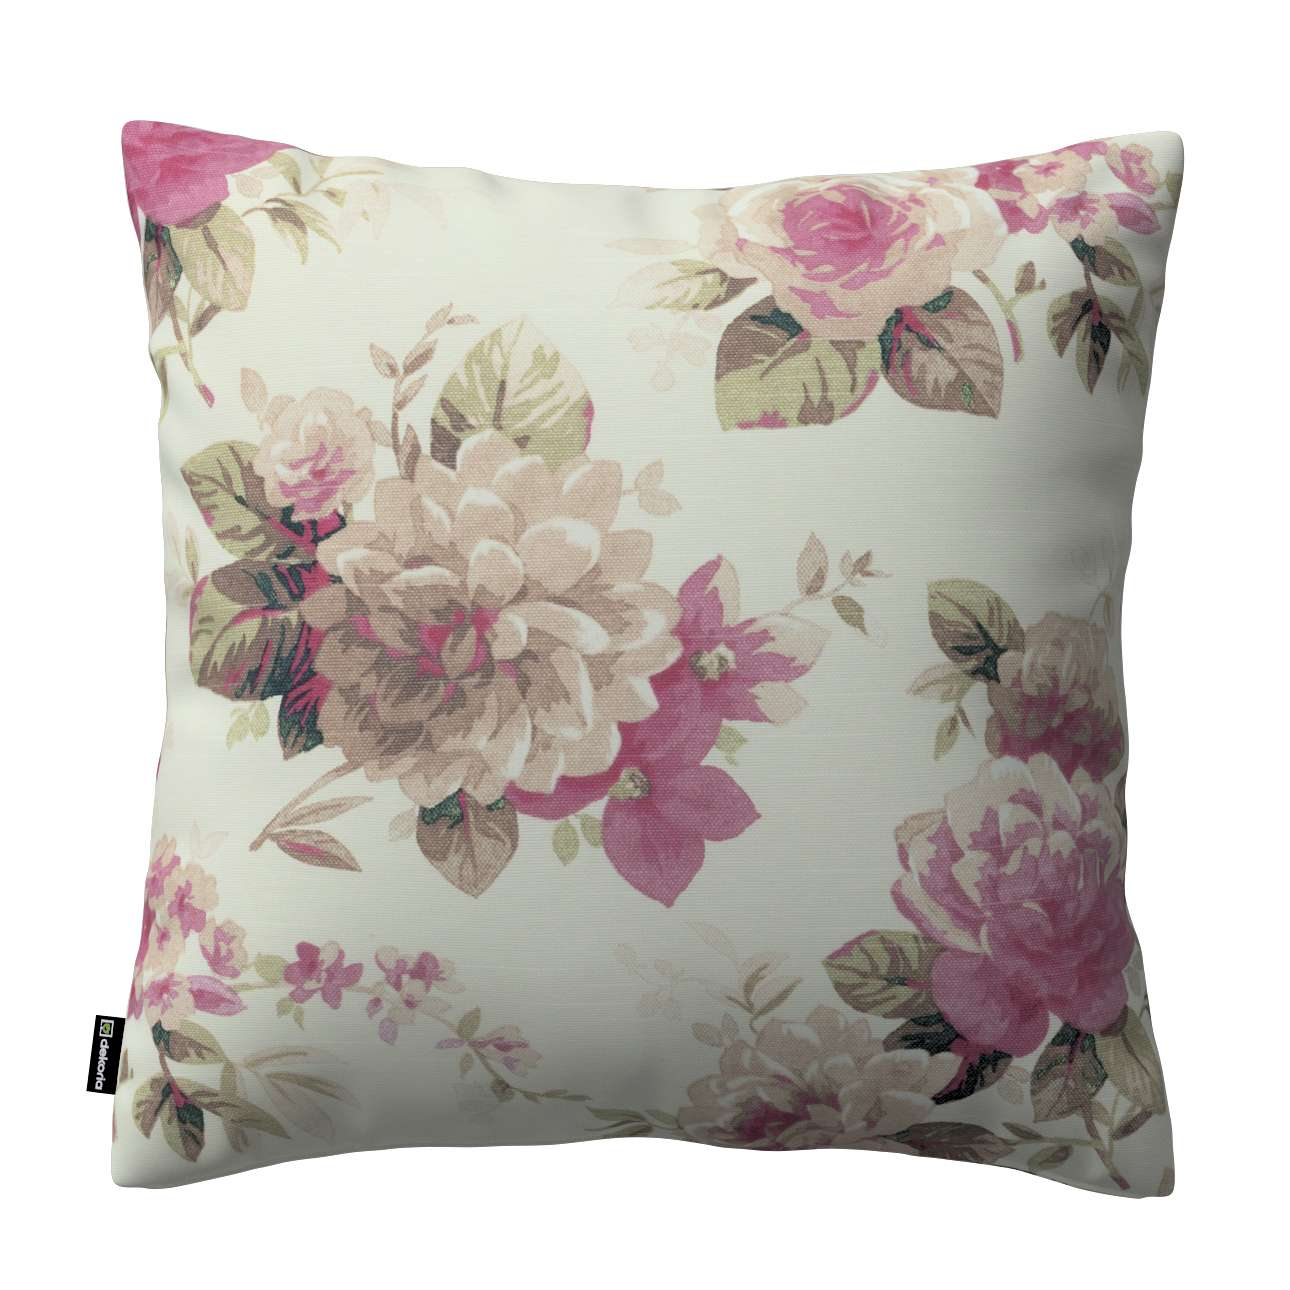 Kinga cushion cover in collection Mirella, fabric: 141-07